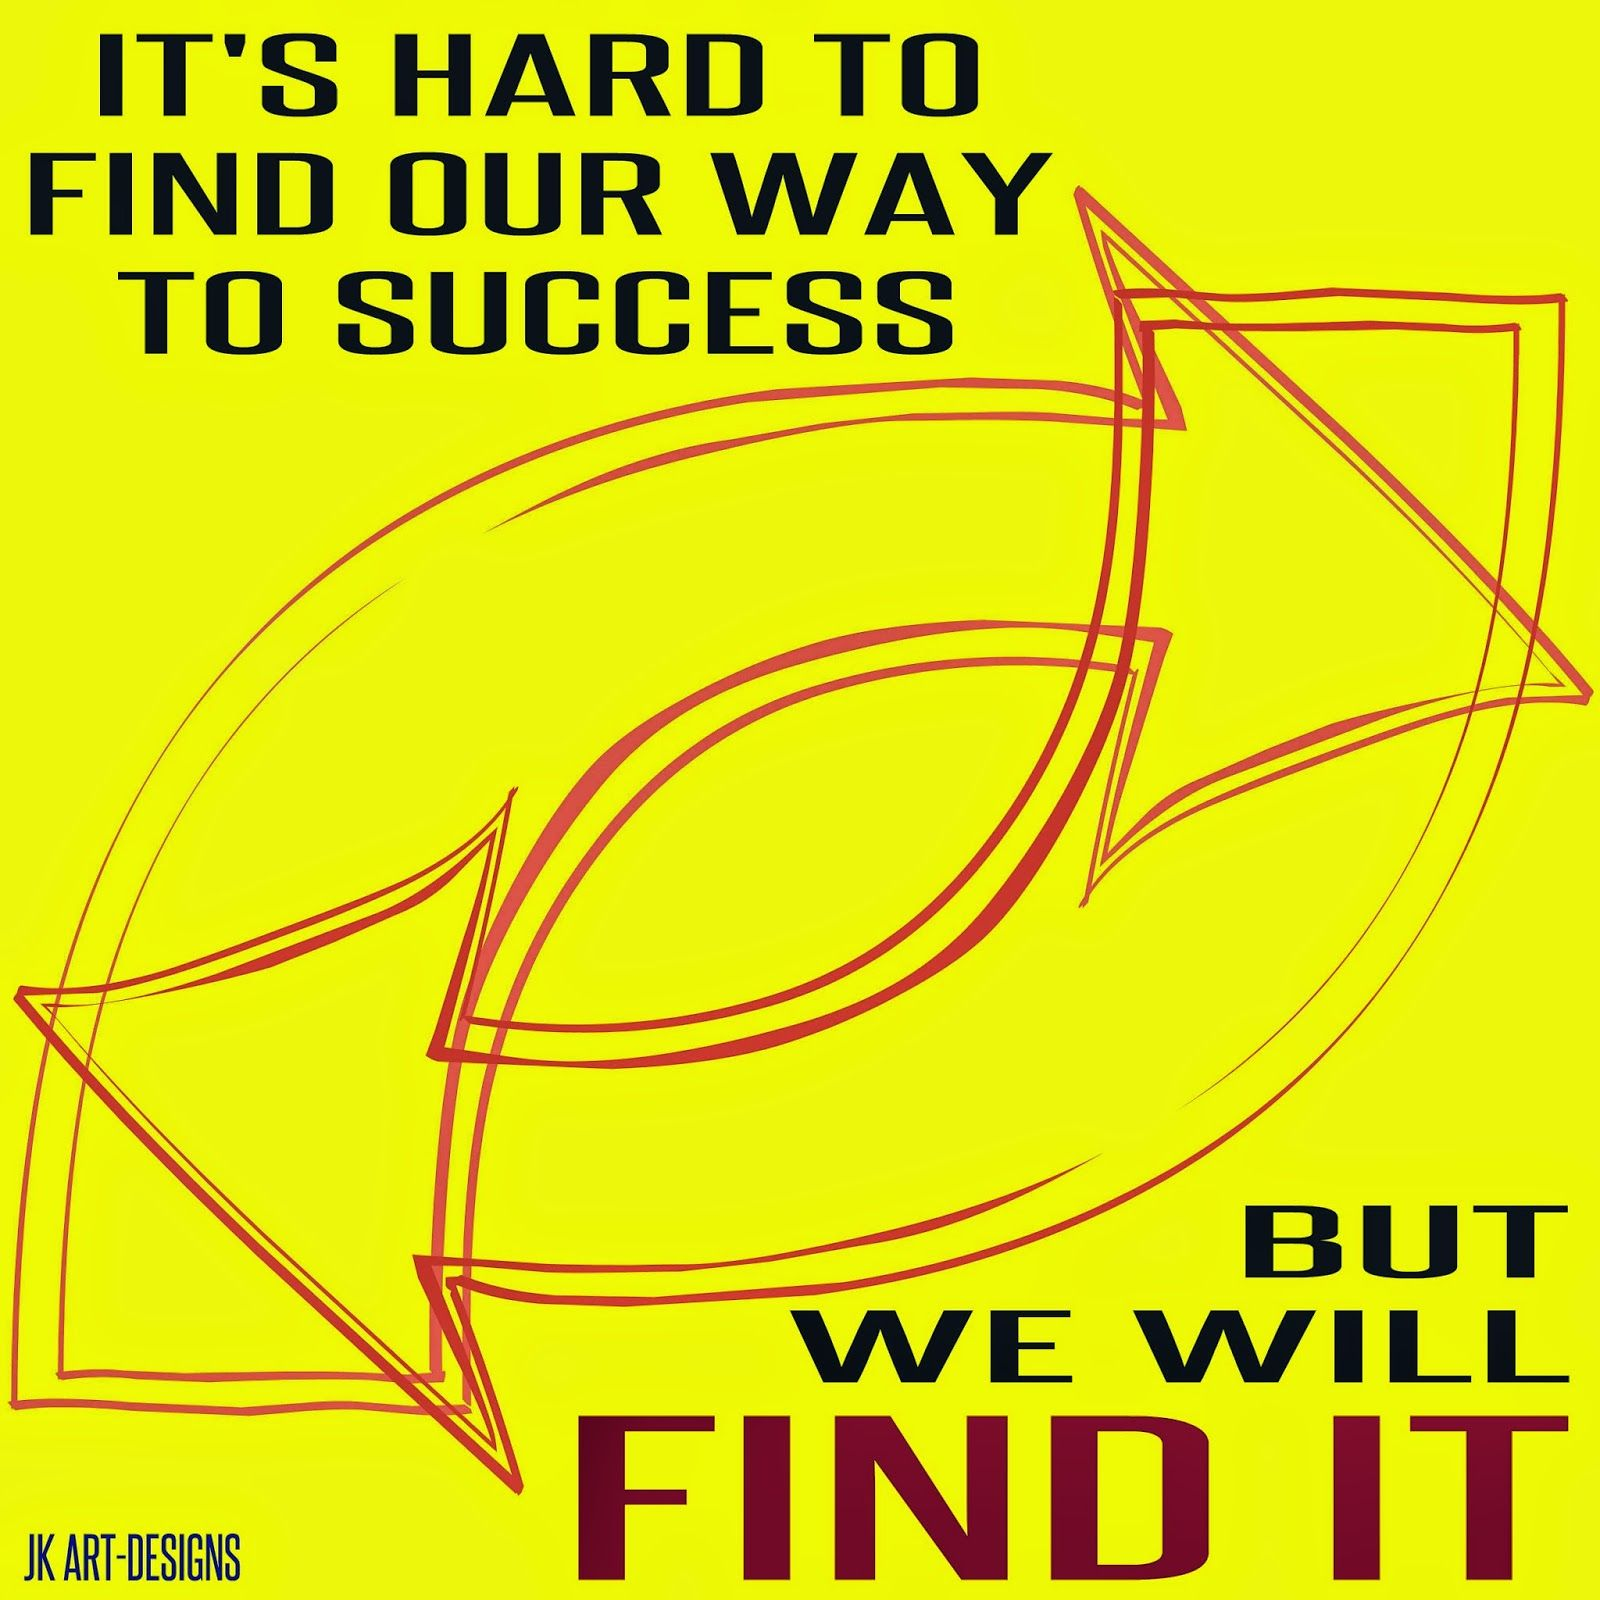 Mijn T-shirt-prints: The Way To Our Success